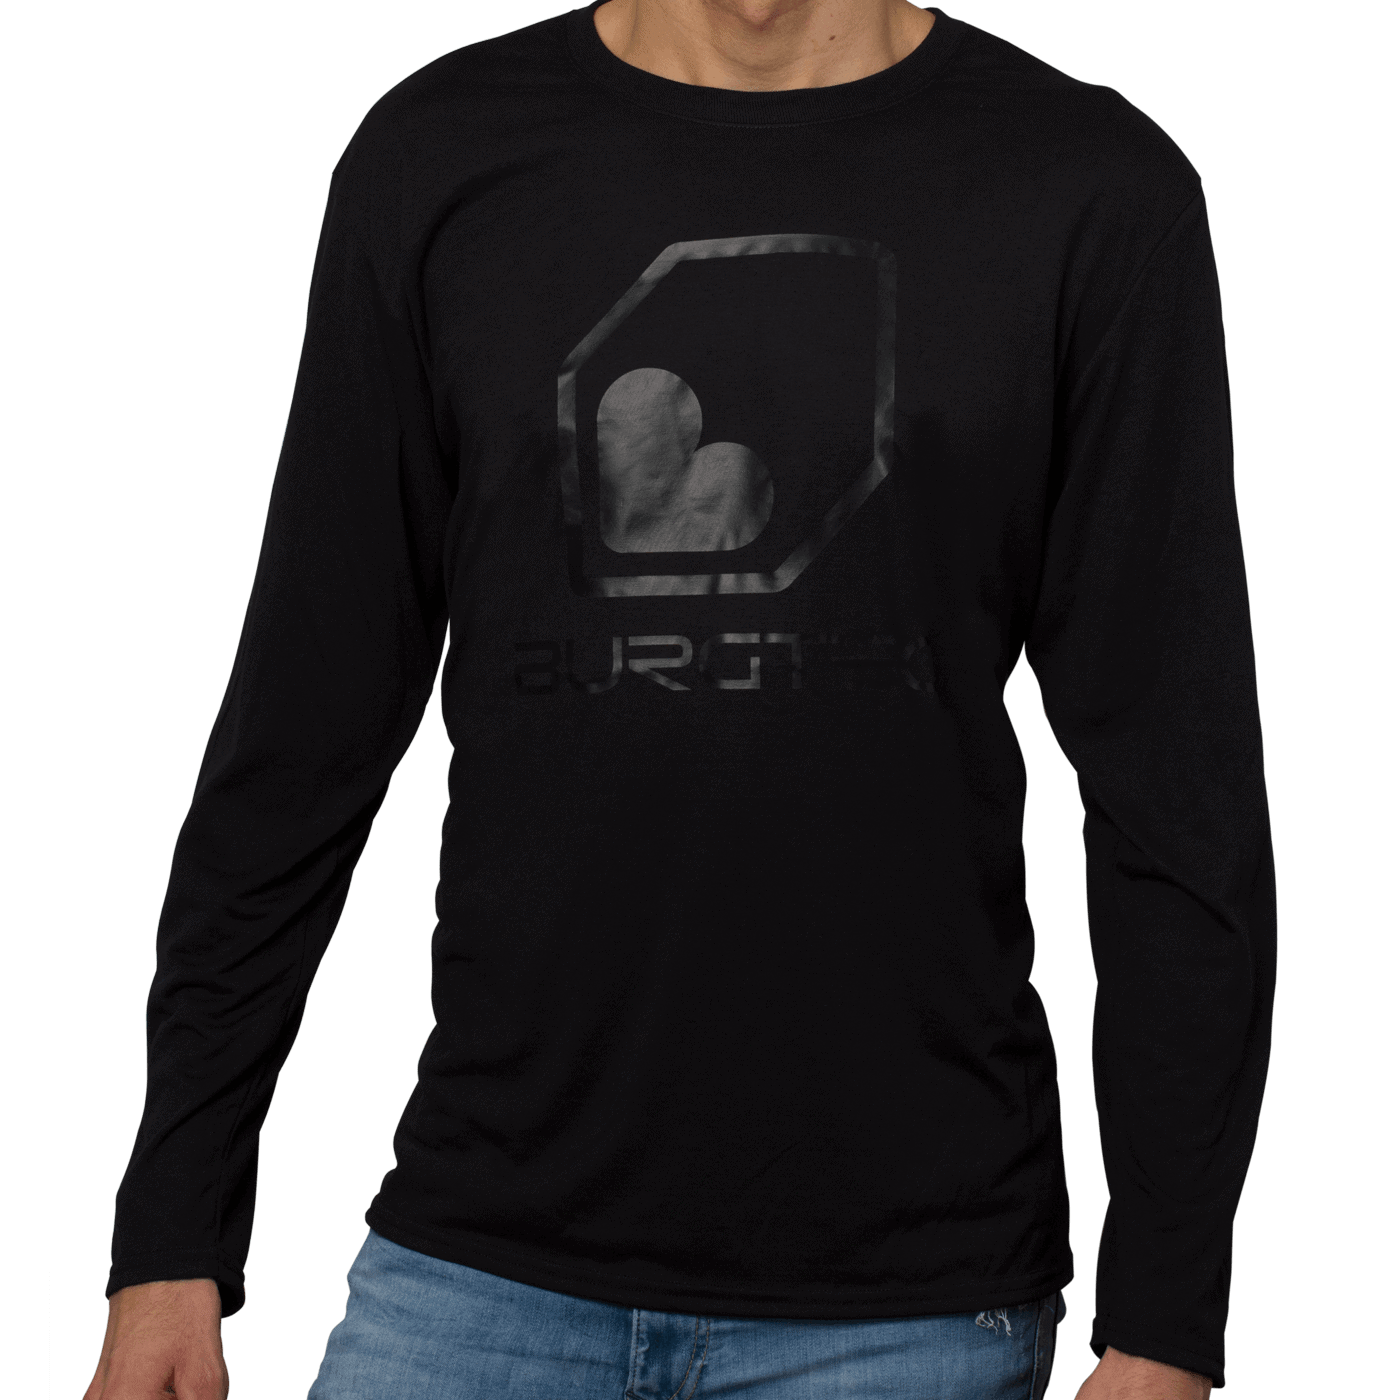 6200-Long-Sleeve-BOB-Tshirt